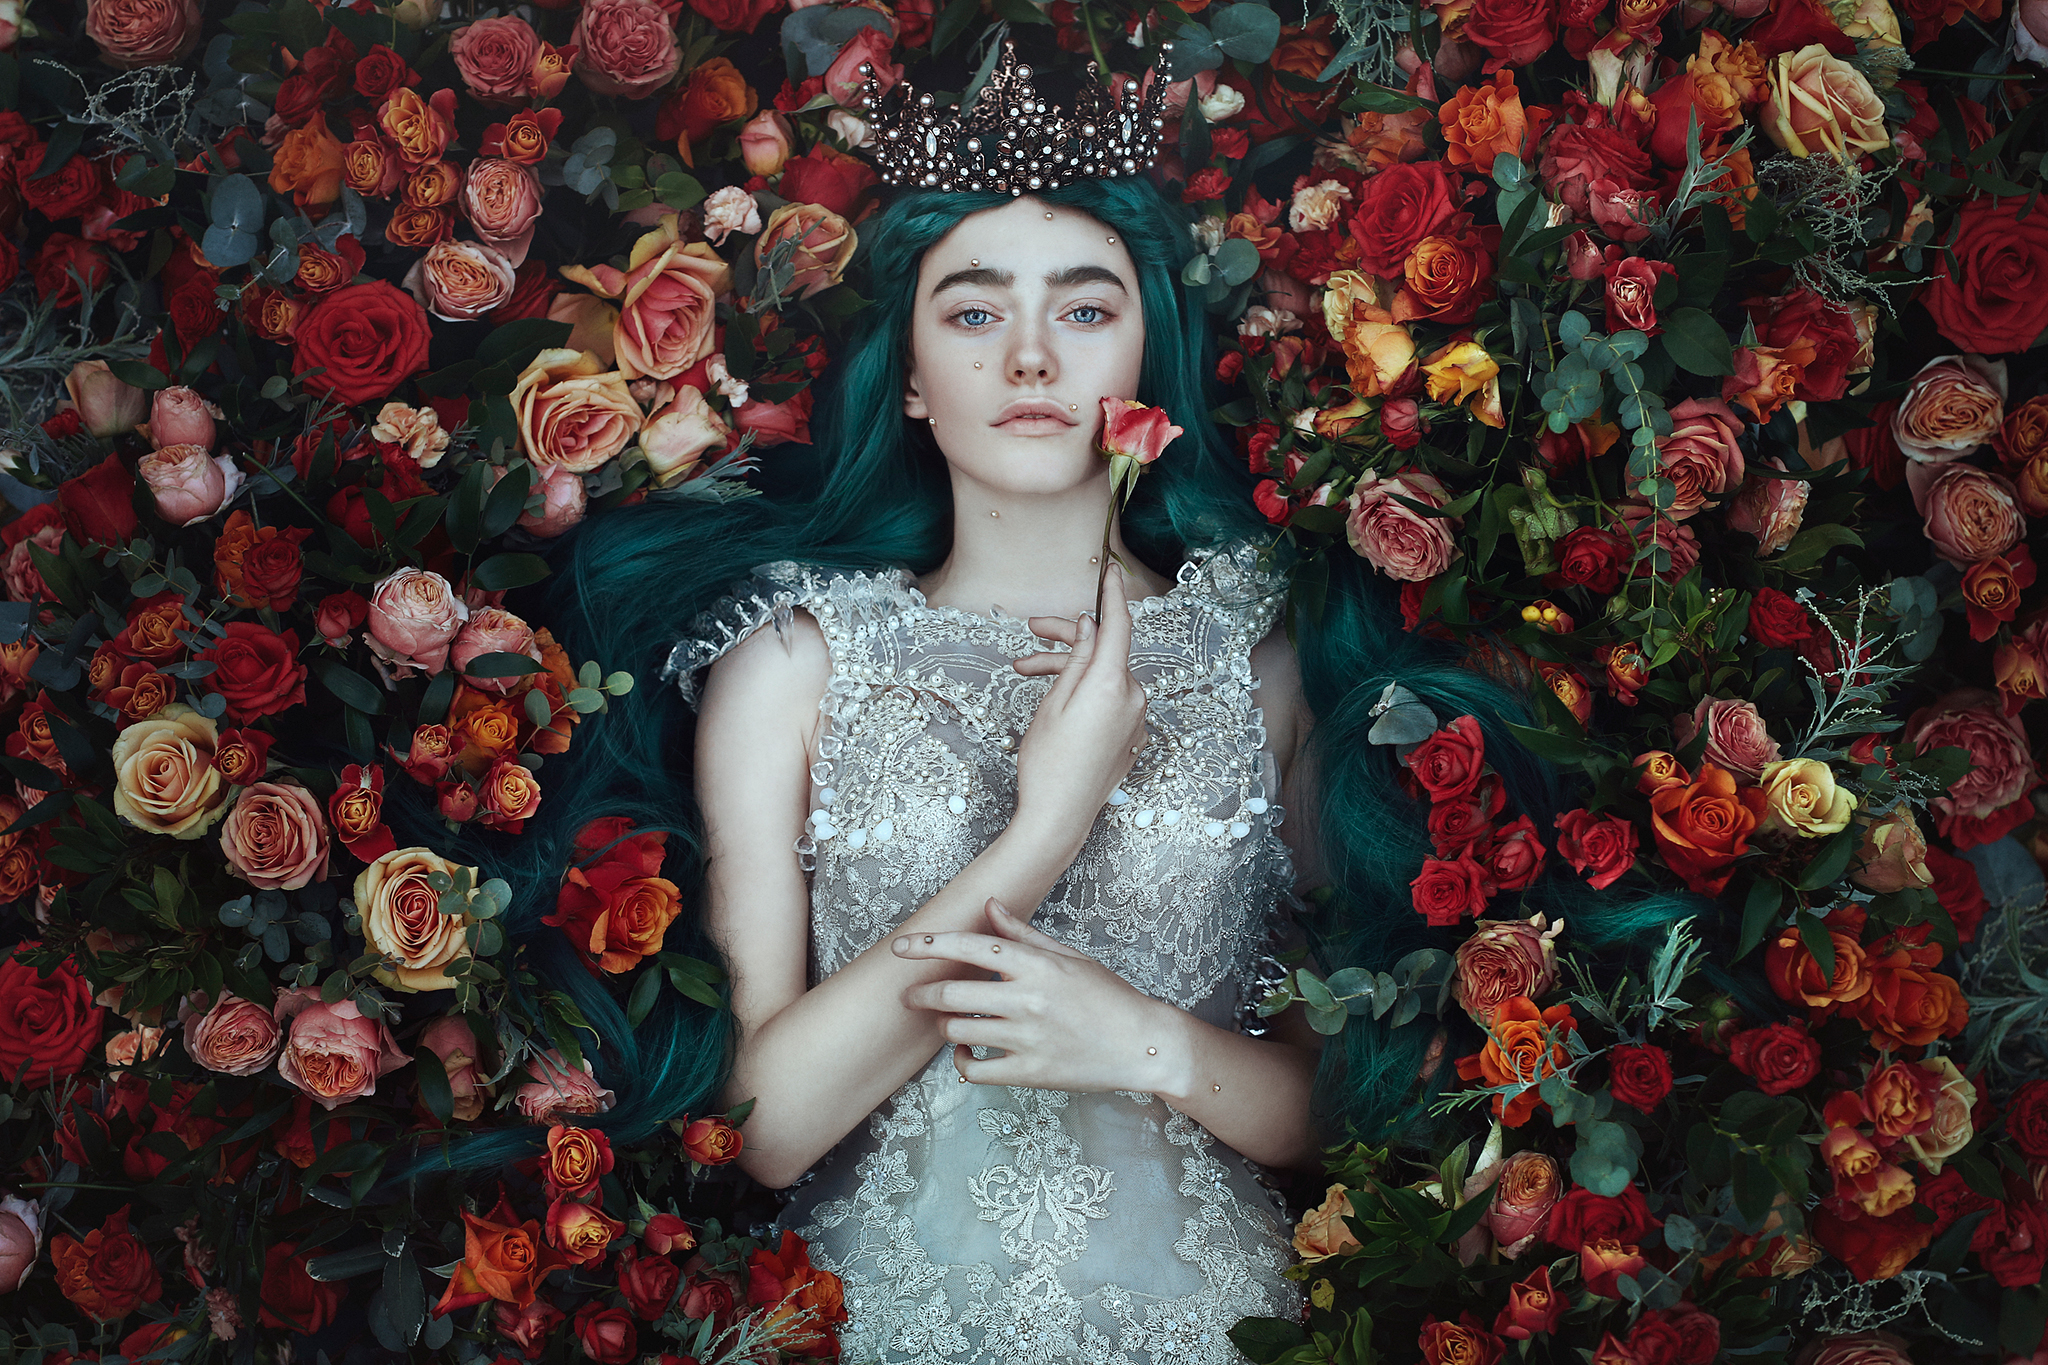 What the Earth Gave Me    -  Bella Kotak.  Limited edition 60 x 60cm print with border- 1 of 25. £180 - print only. To order contact:  info@elementstudios.co.uk